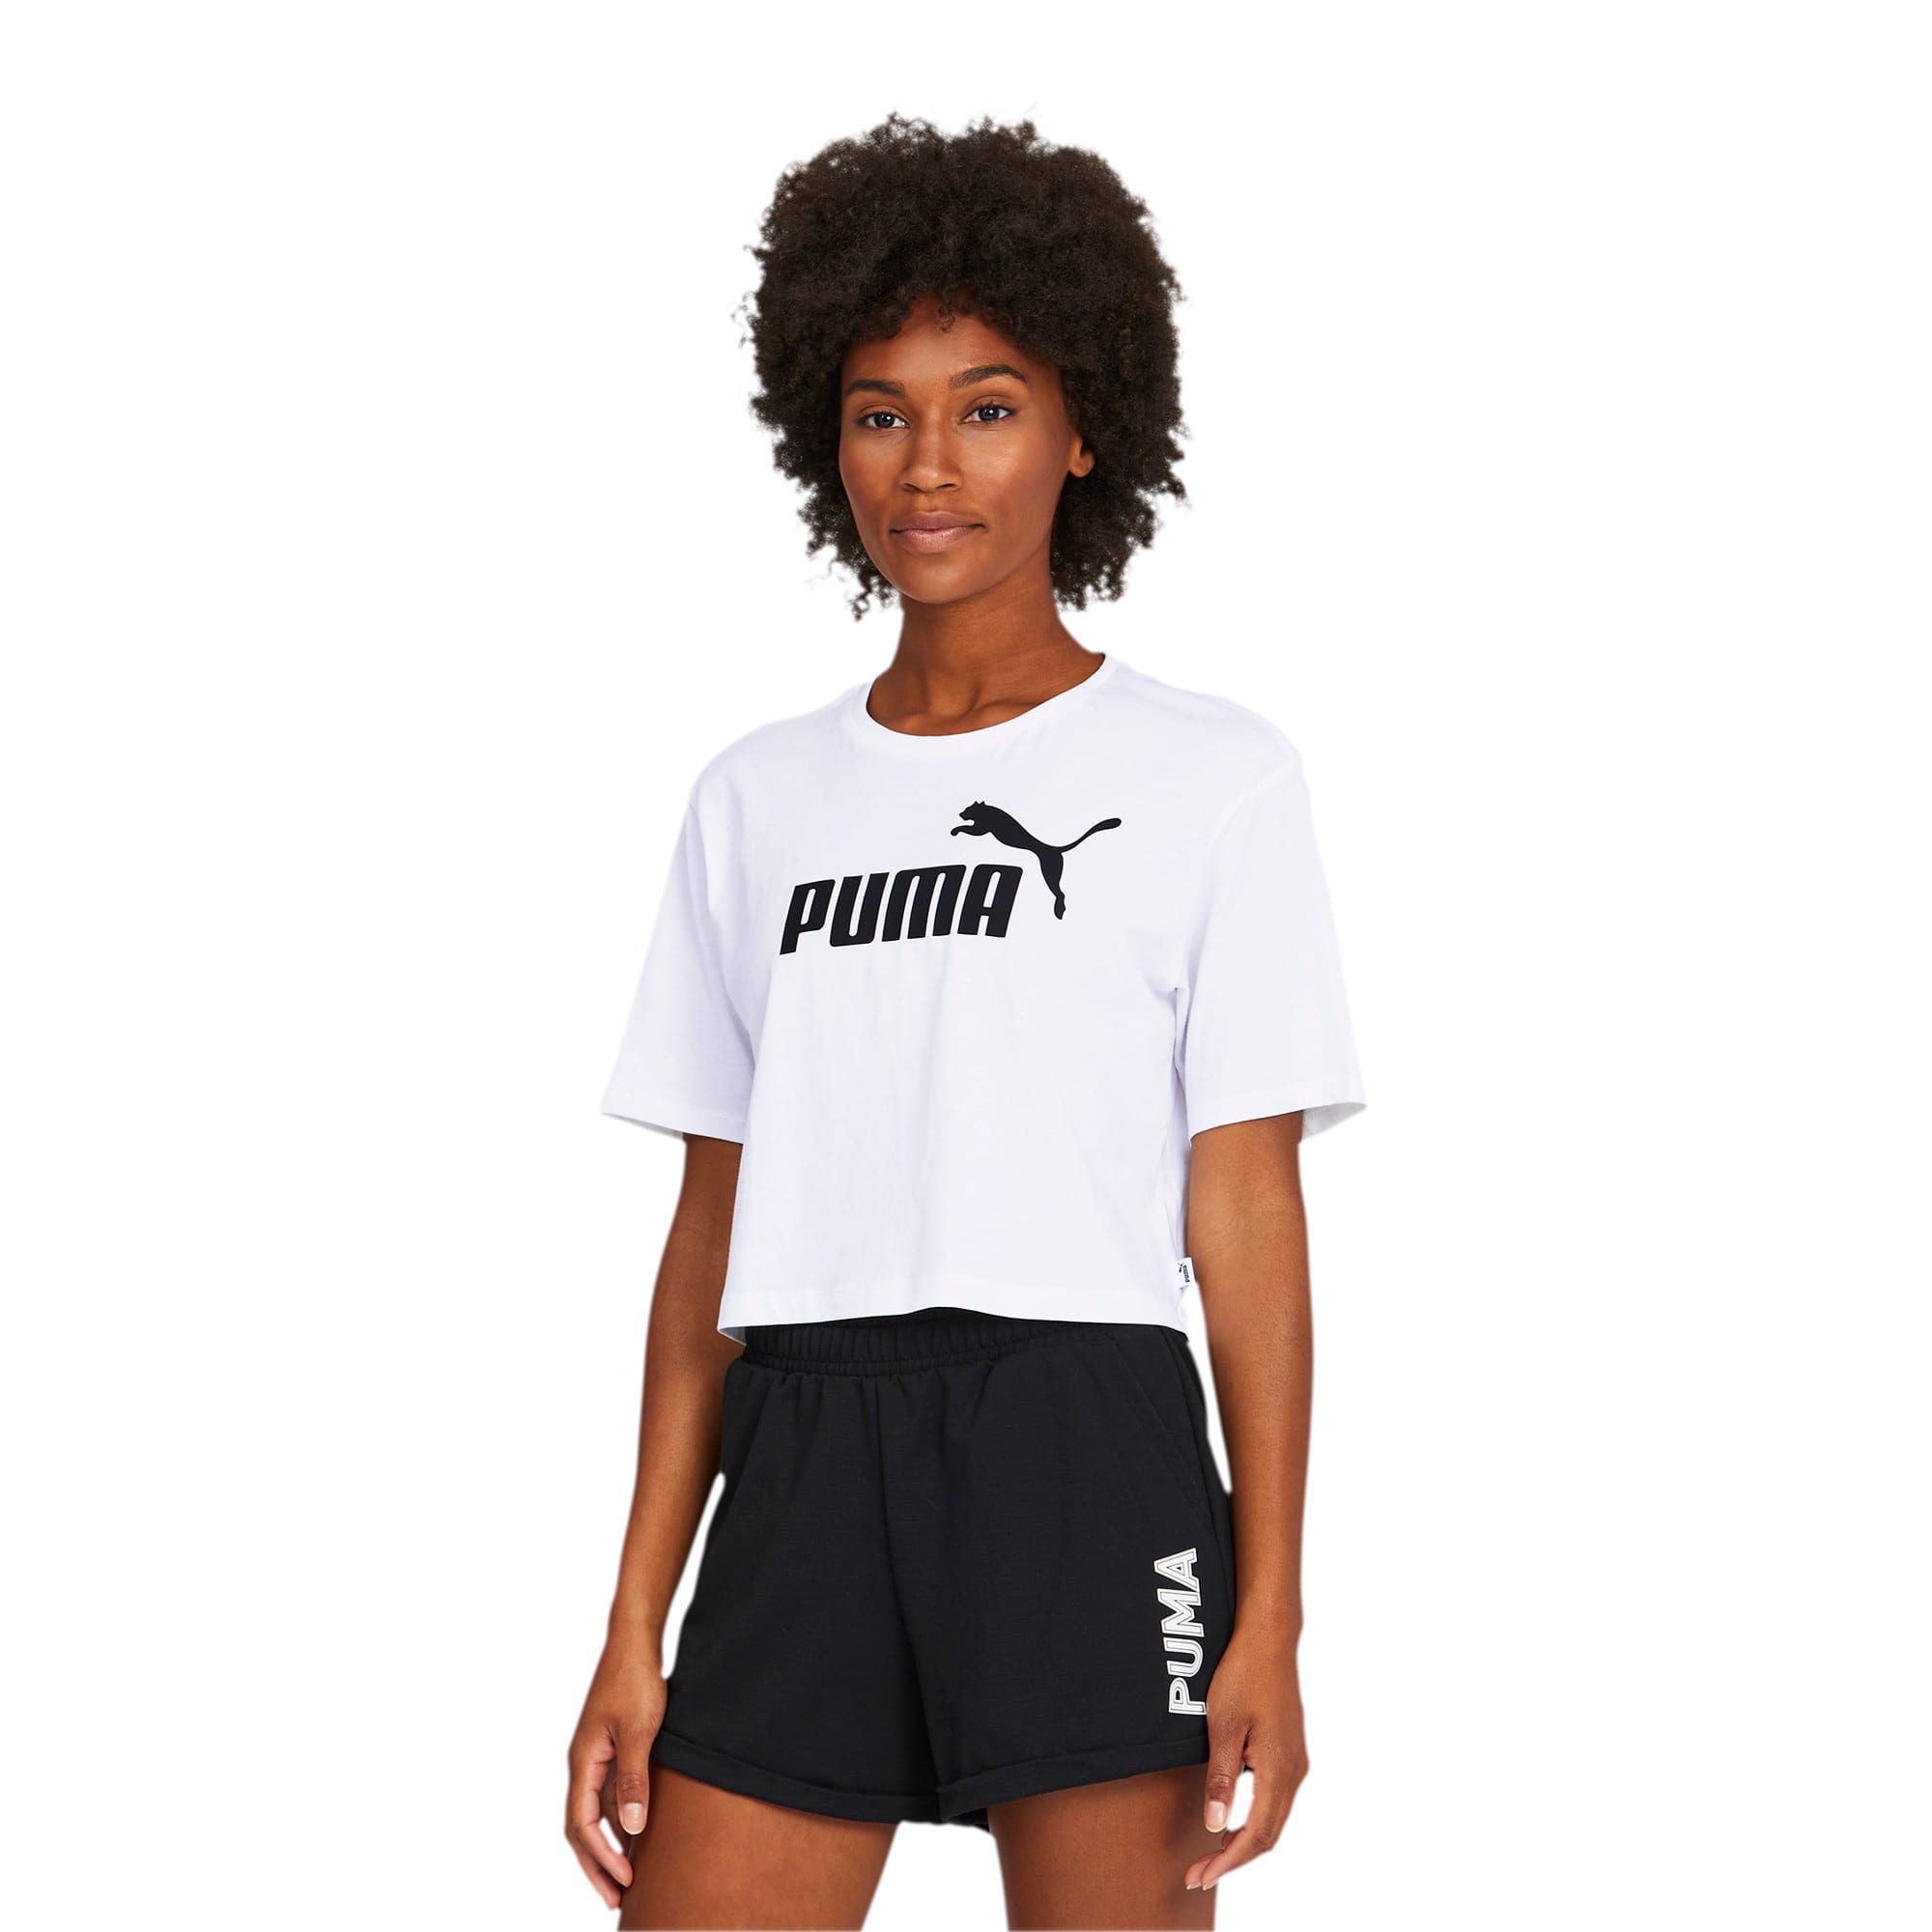 Essentials+ Cropped Women's Tee, Puma White, large